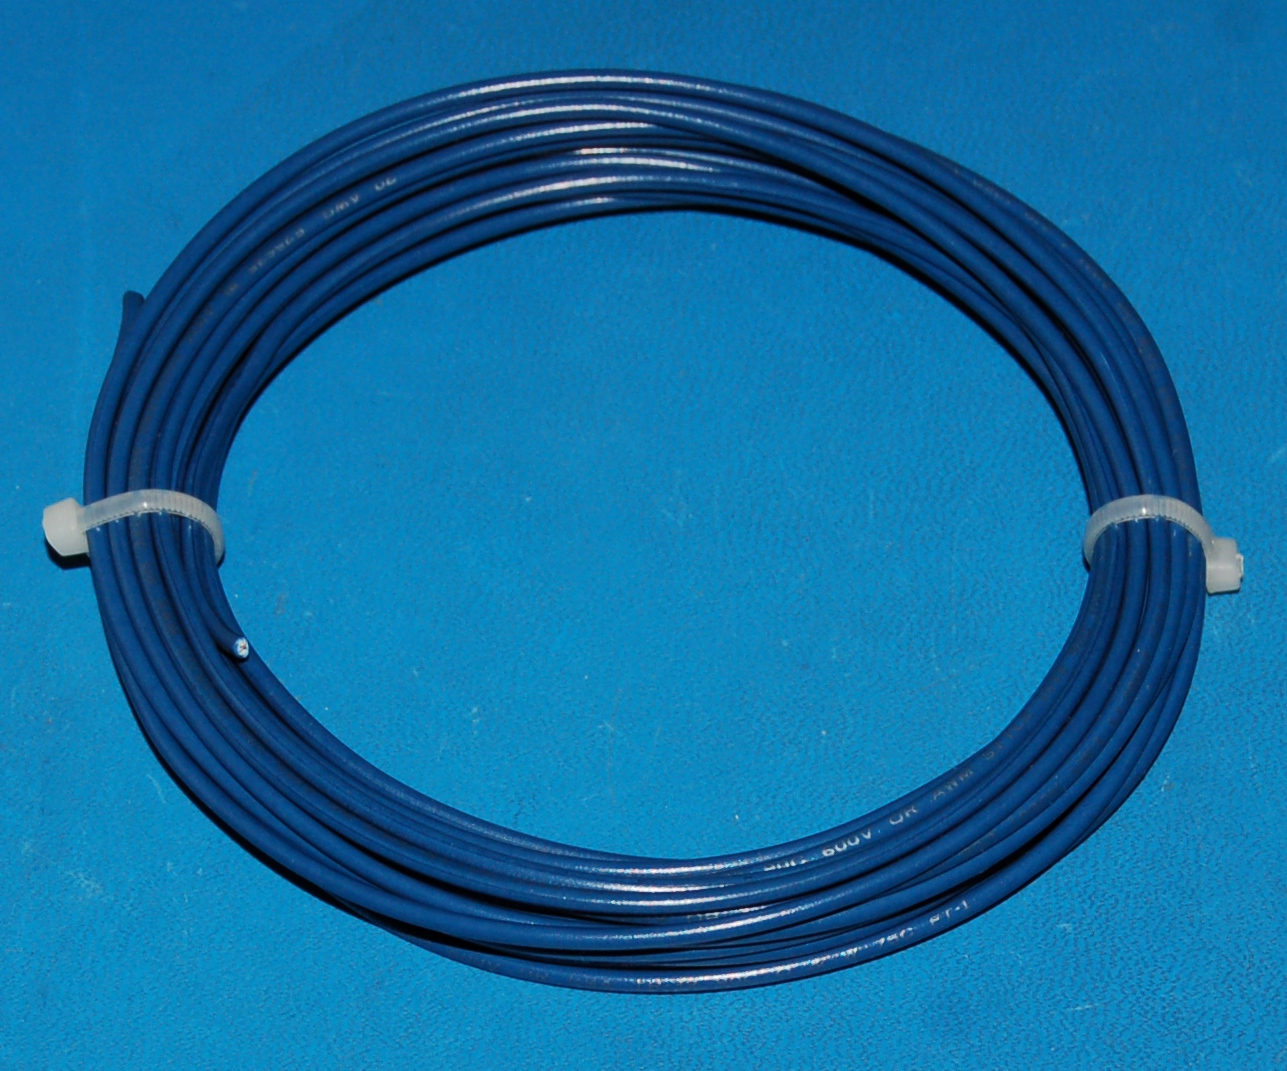 Solid Tinned Copper Wire, 600V, #20 AWG x 25' (Blue)